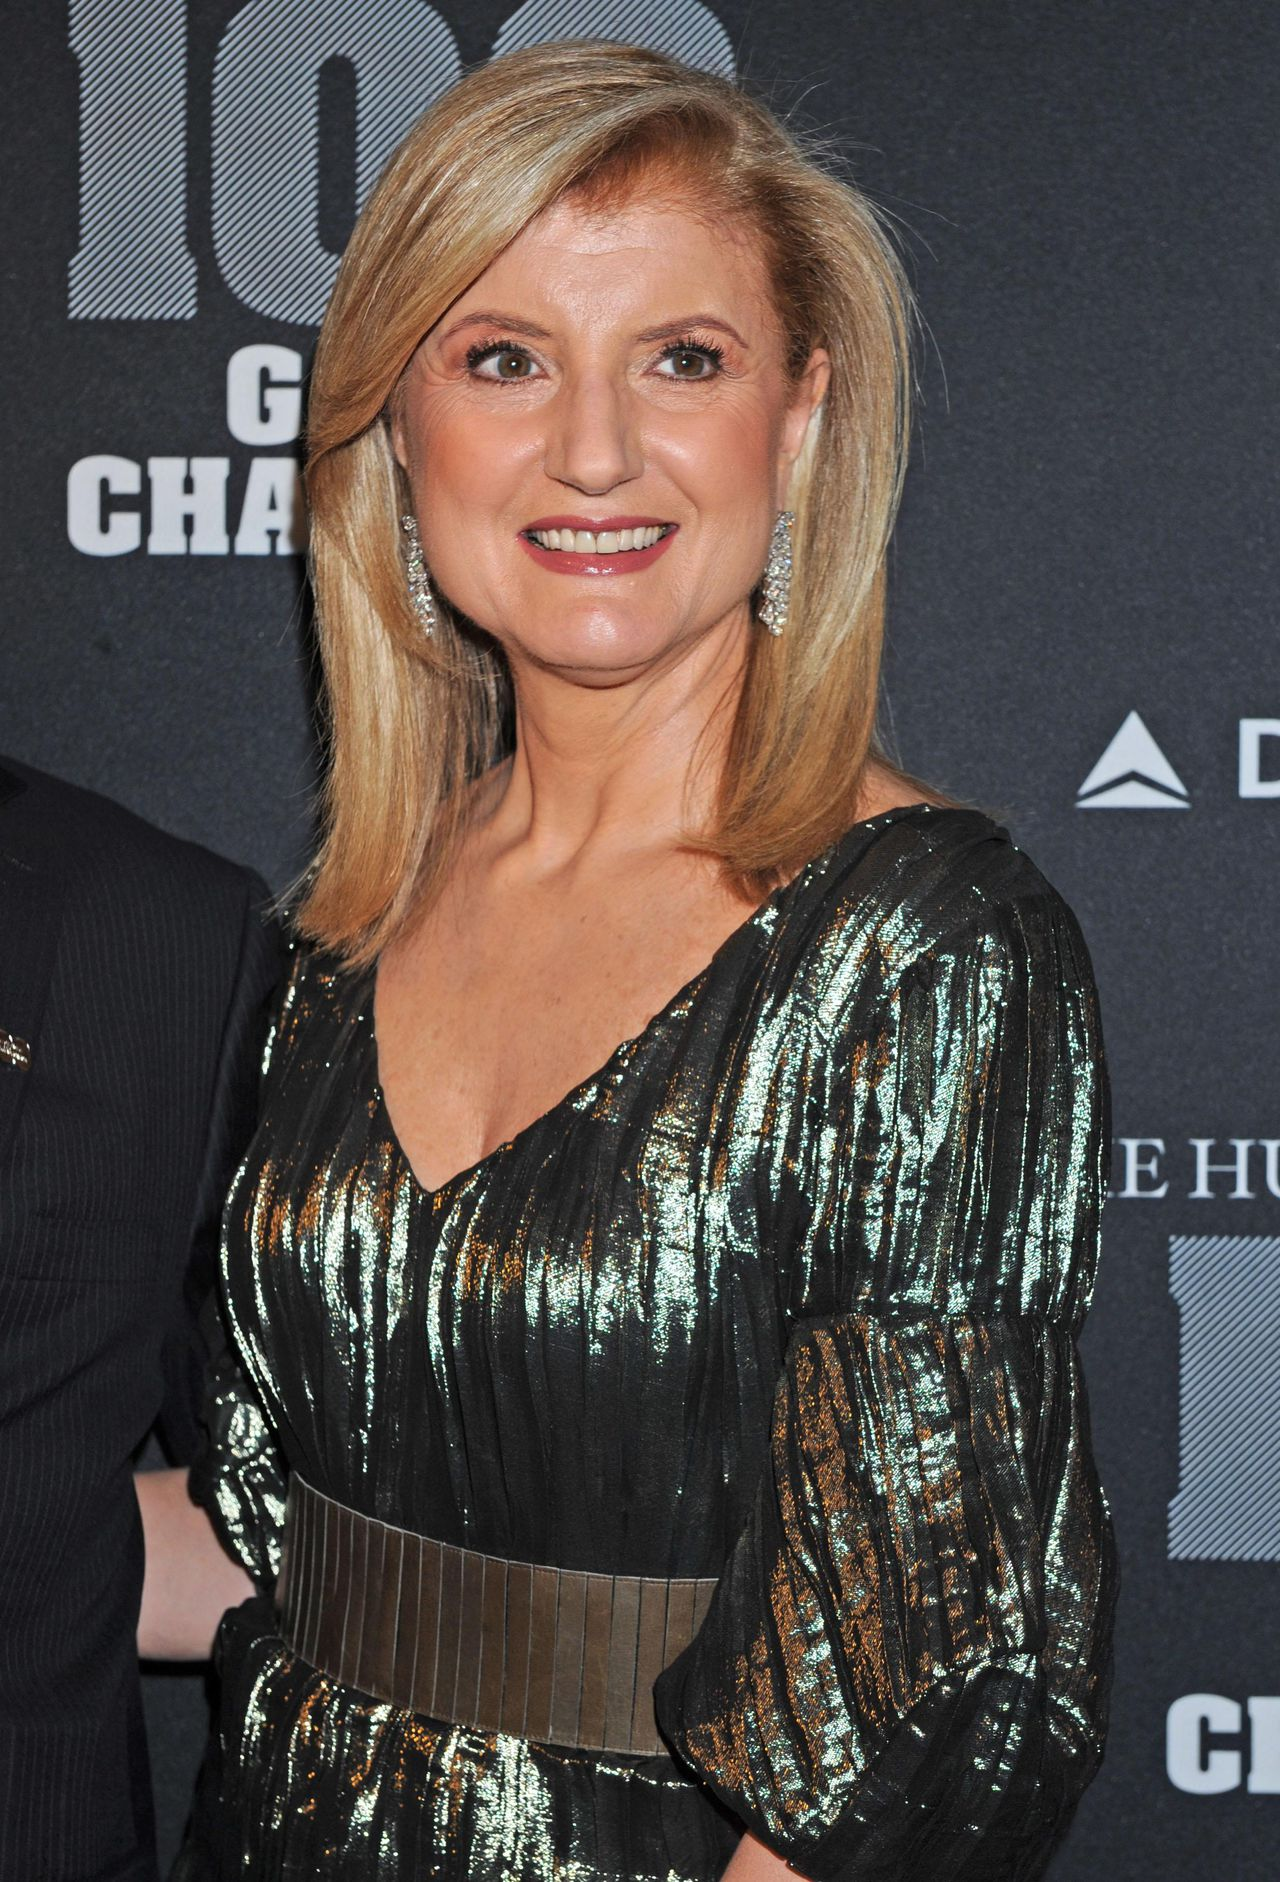 """Ariana Huffington arrives at the """"Huffington Post 2010 Game Changers Event,"""" Thursday, Oct. 28, 2010, in New York. (AP Photo/Louis Lanzano)"""